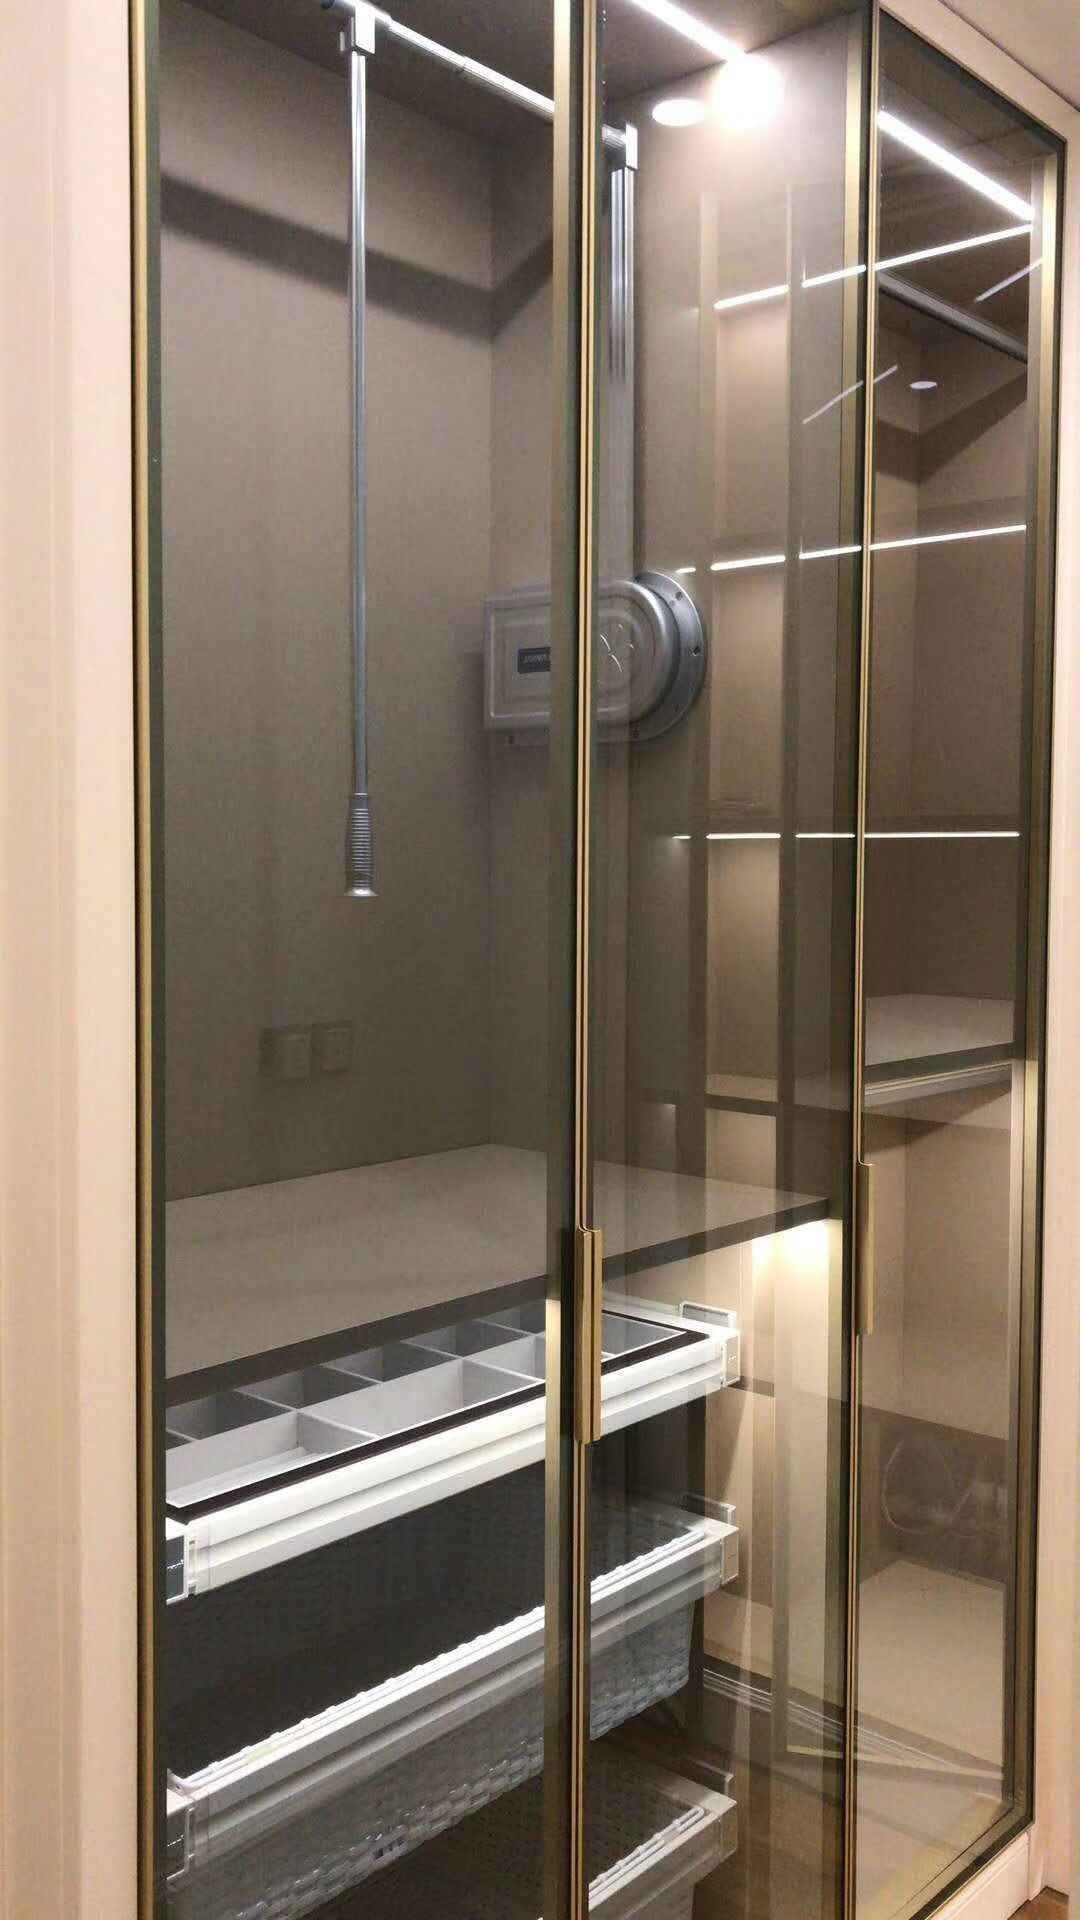 Aluminum Cabinet Doors Awesome Uke Glass Front Extruded Square Aluminum Cabinet Door Frame with Integrated Handle